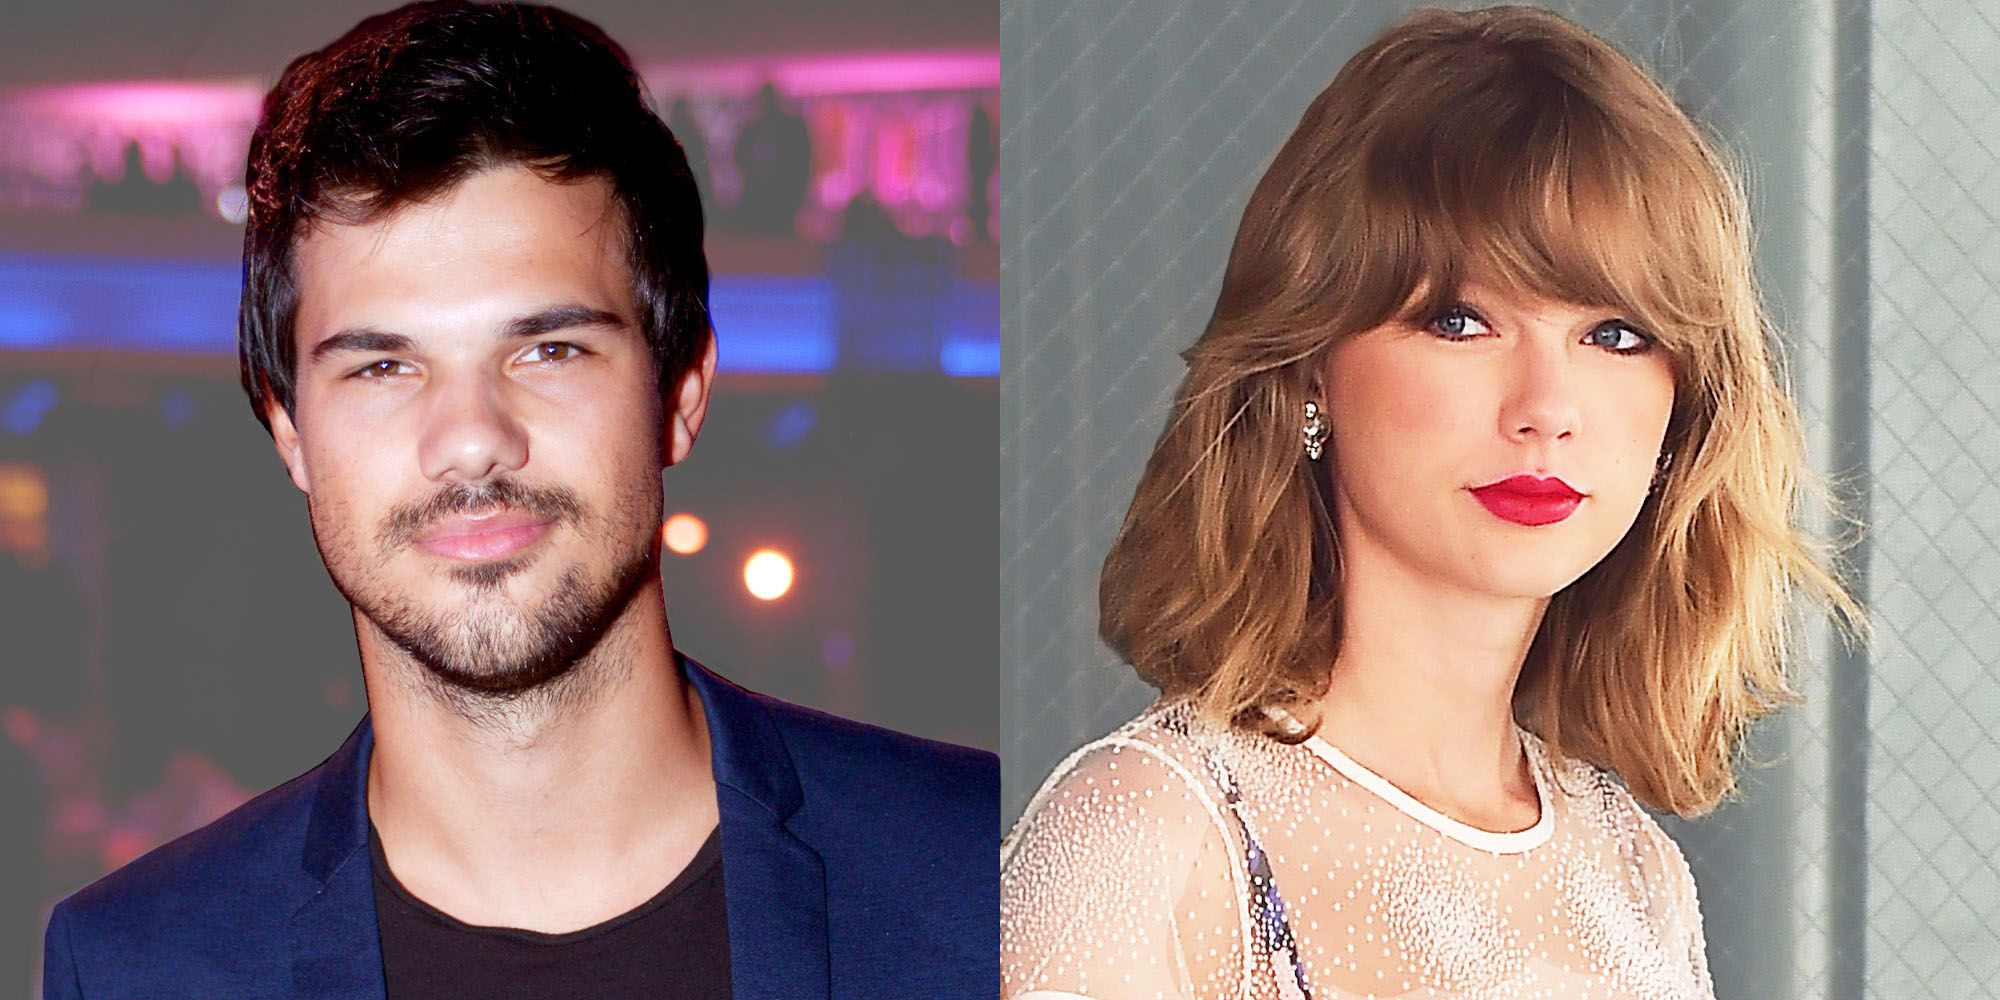 Taylor Lautner On Dating Taylor Swift Lea Michele Asks Taylor Lautner About Ex Girlfriend Taylor Swift